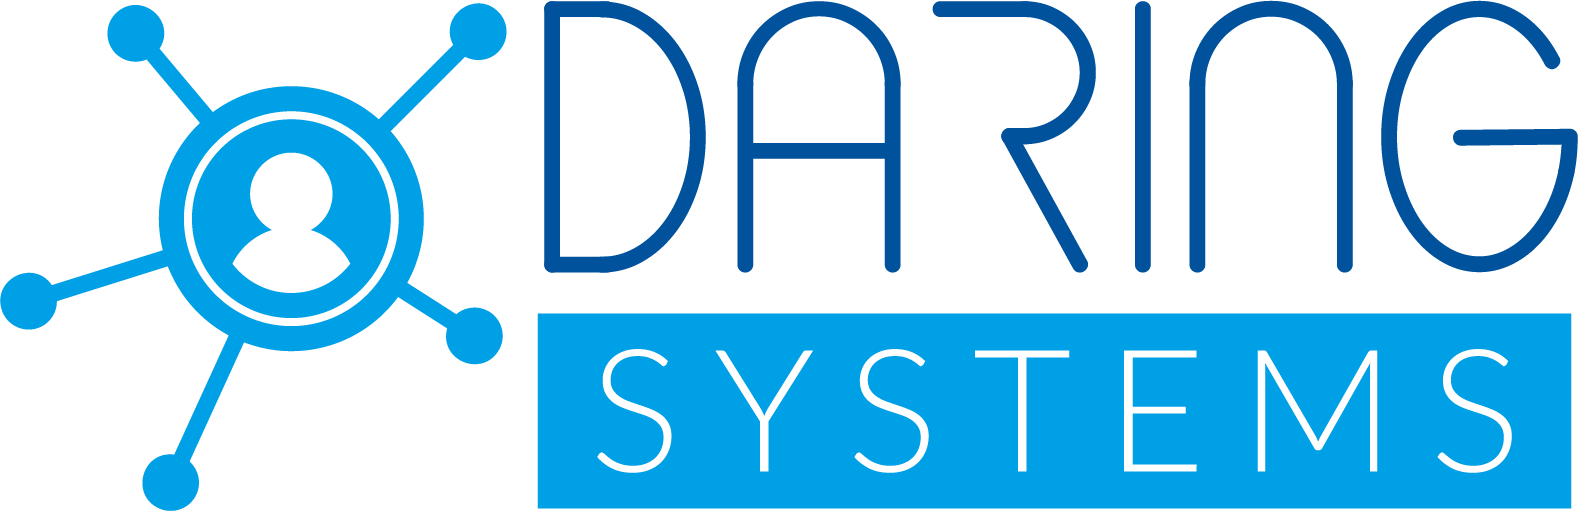 Daring Systems